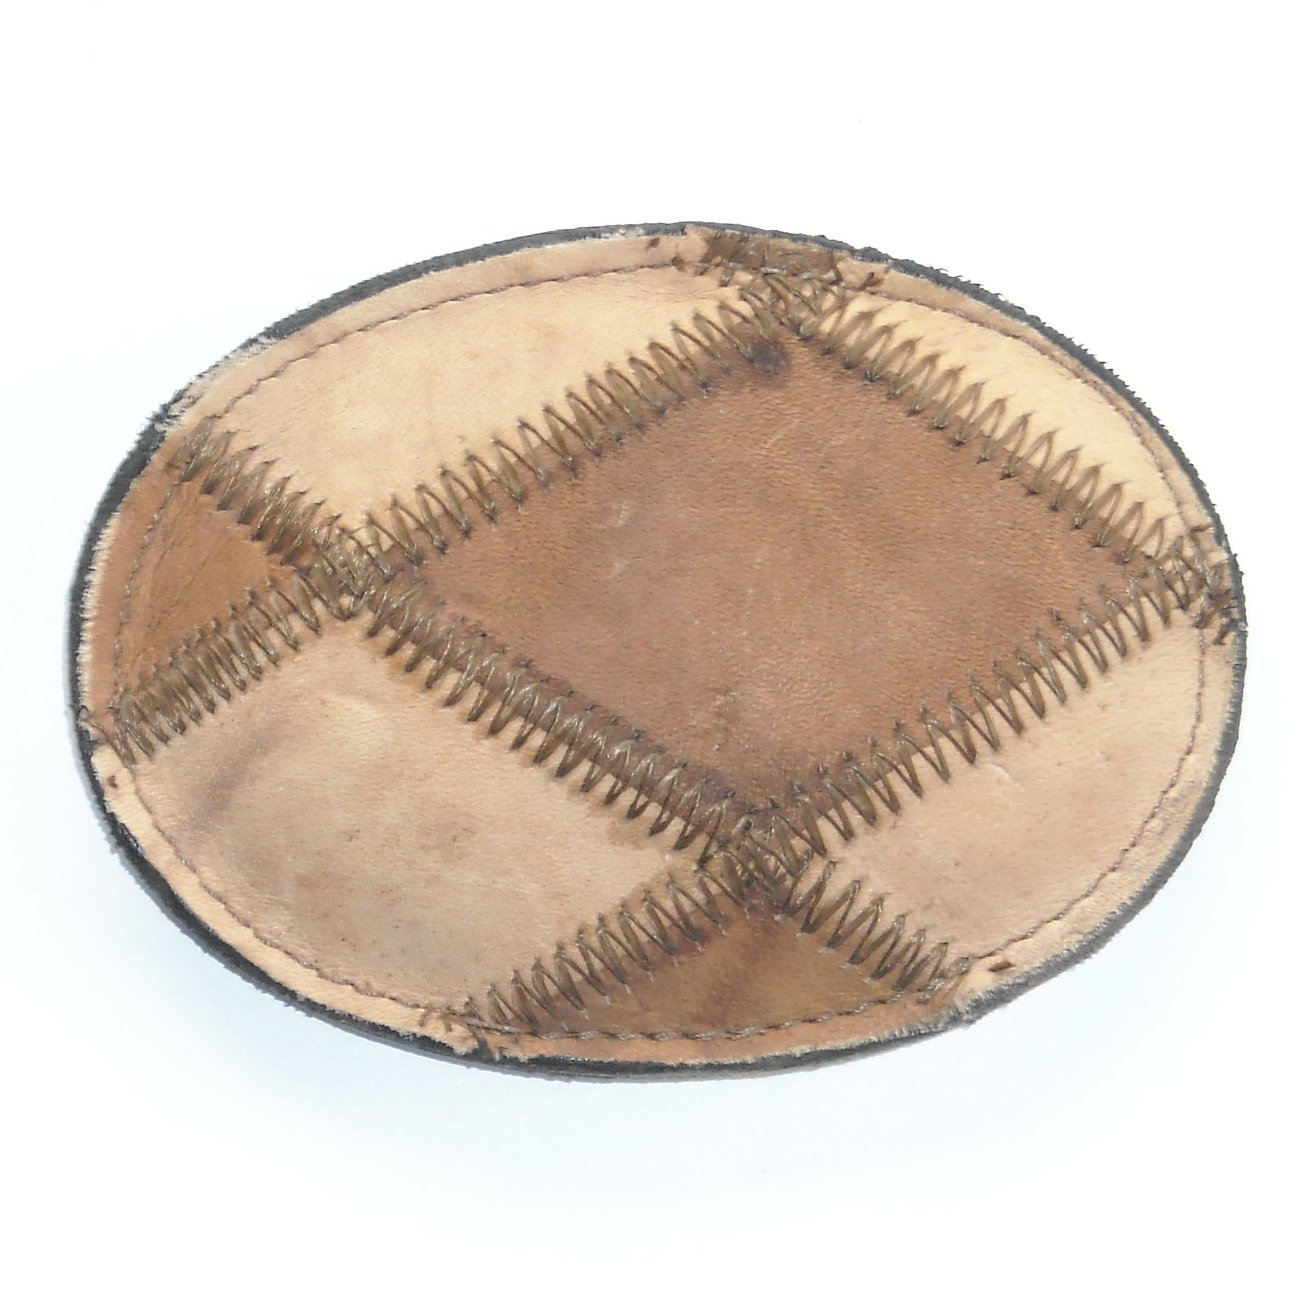 Beige Brick Sewn Vintage Tony Lama Leather Belt Buckle